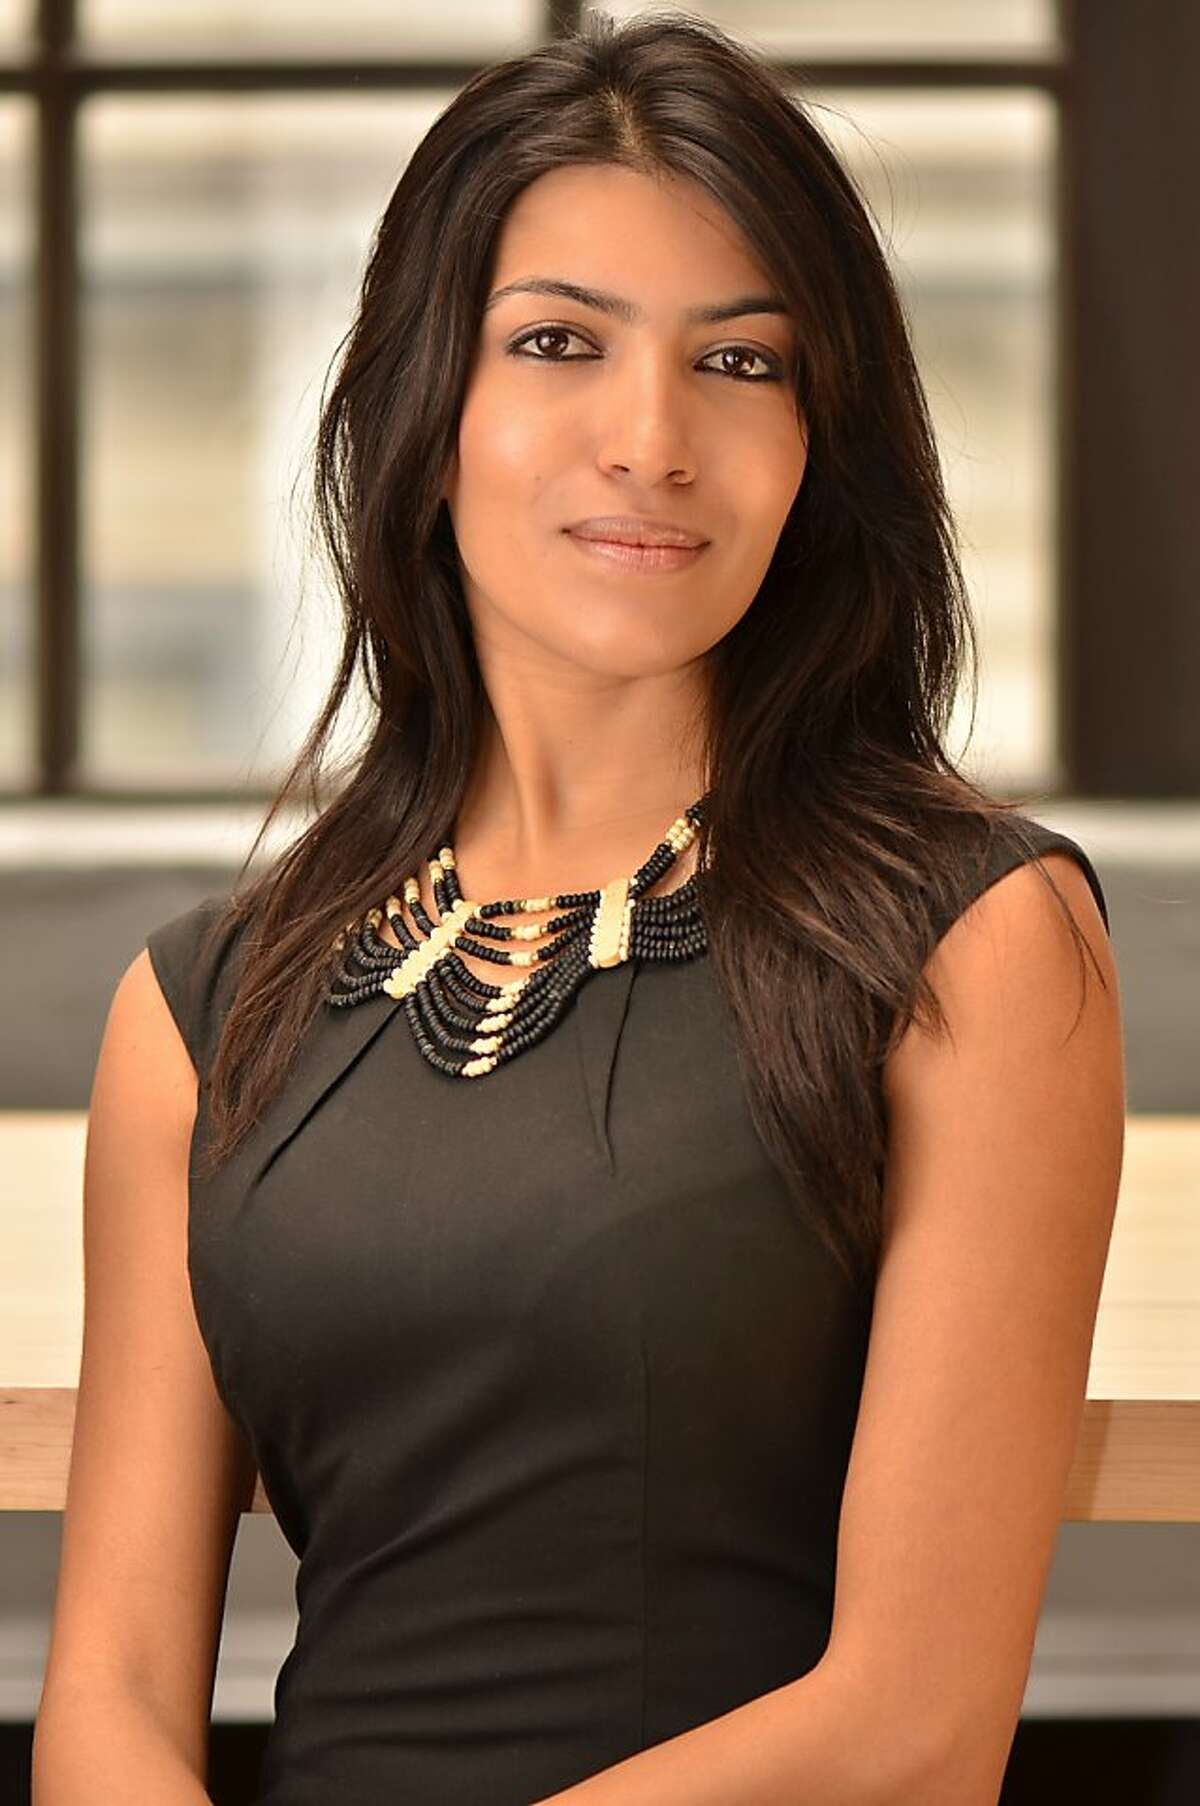 Leila Janah is the founder and CEO of critically acclaimed Samasource.